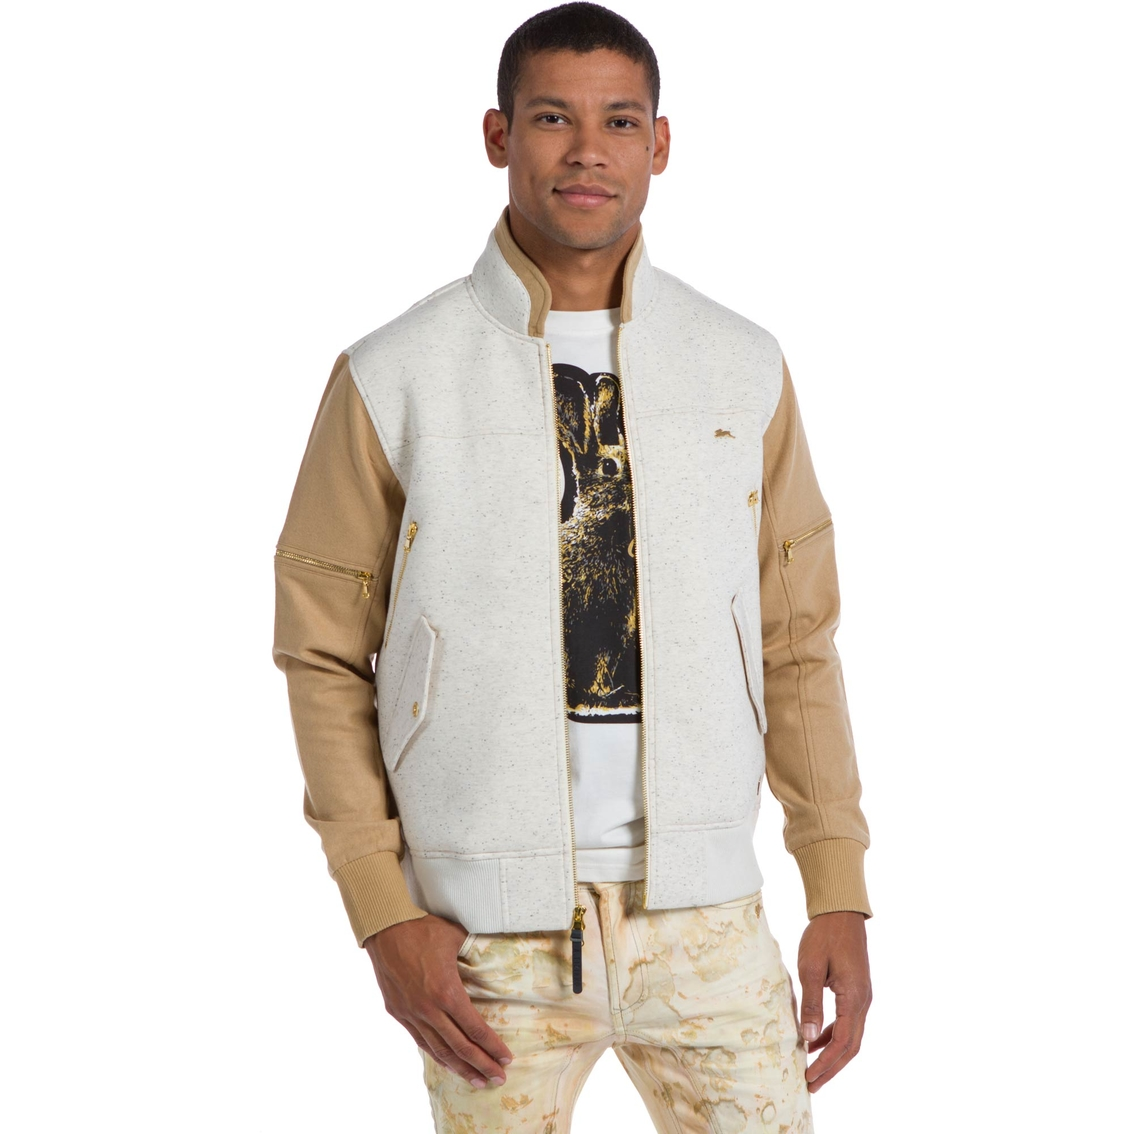 9625760a77f3c A.tiziano Jersey Neoprene Bonded Jersey And Wool Bomber Jacket ...